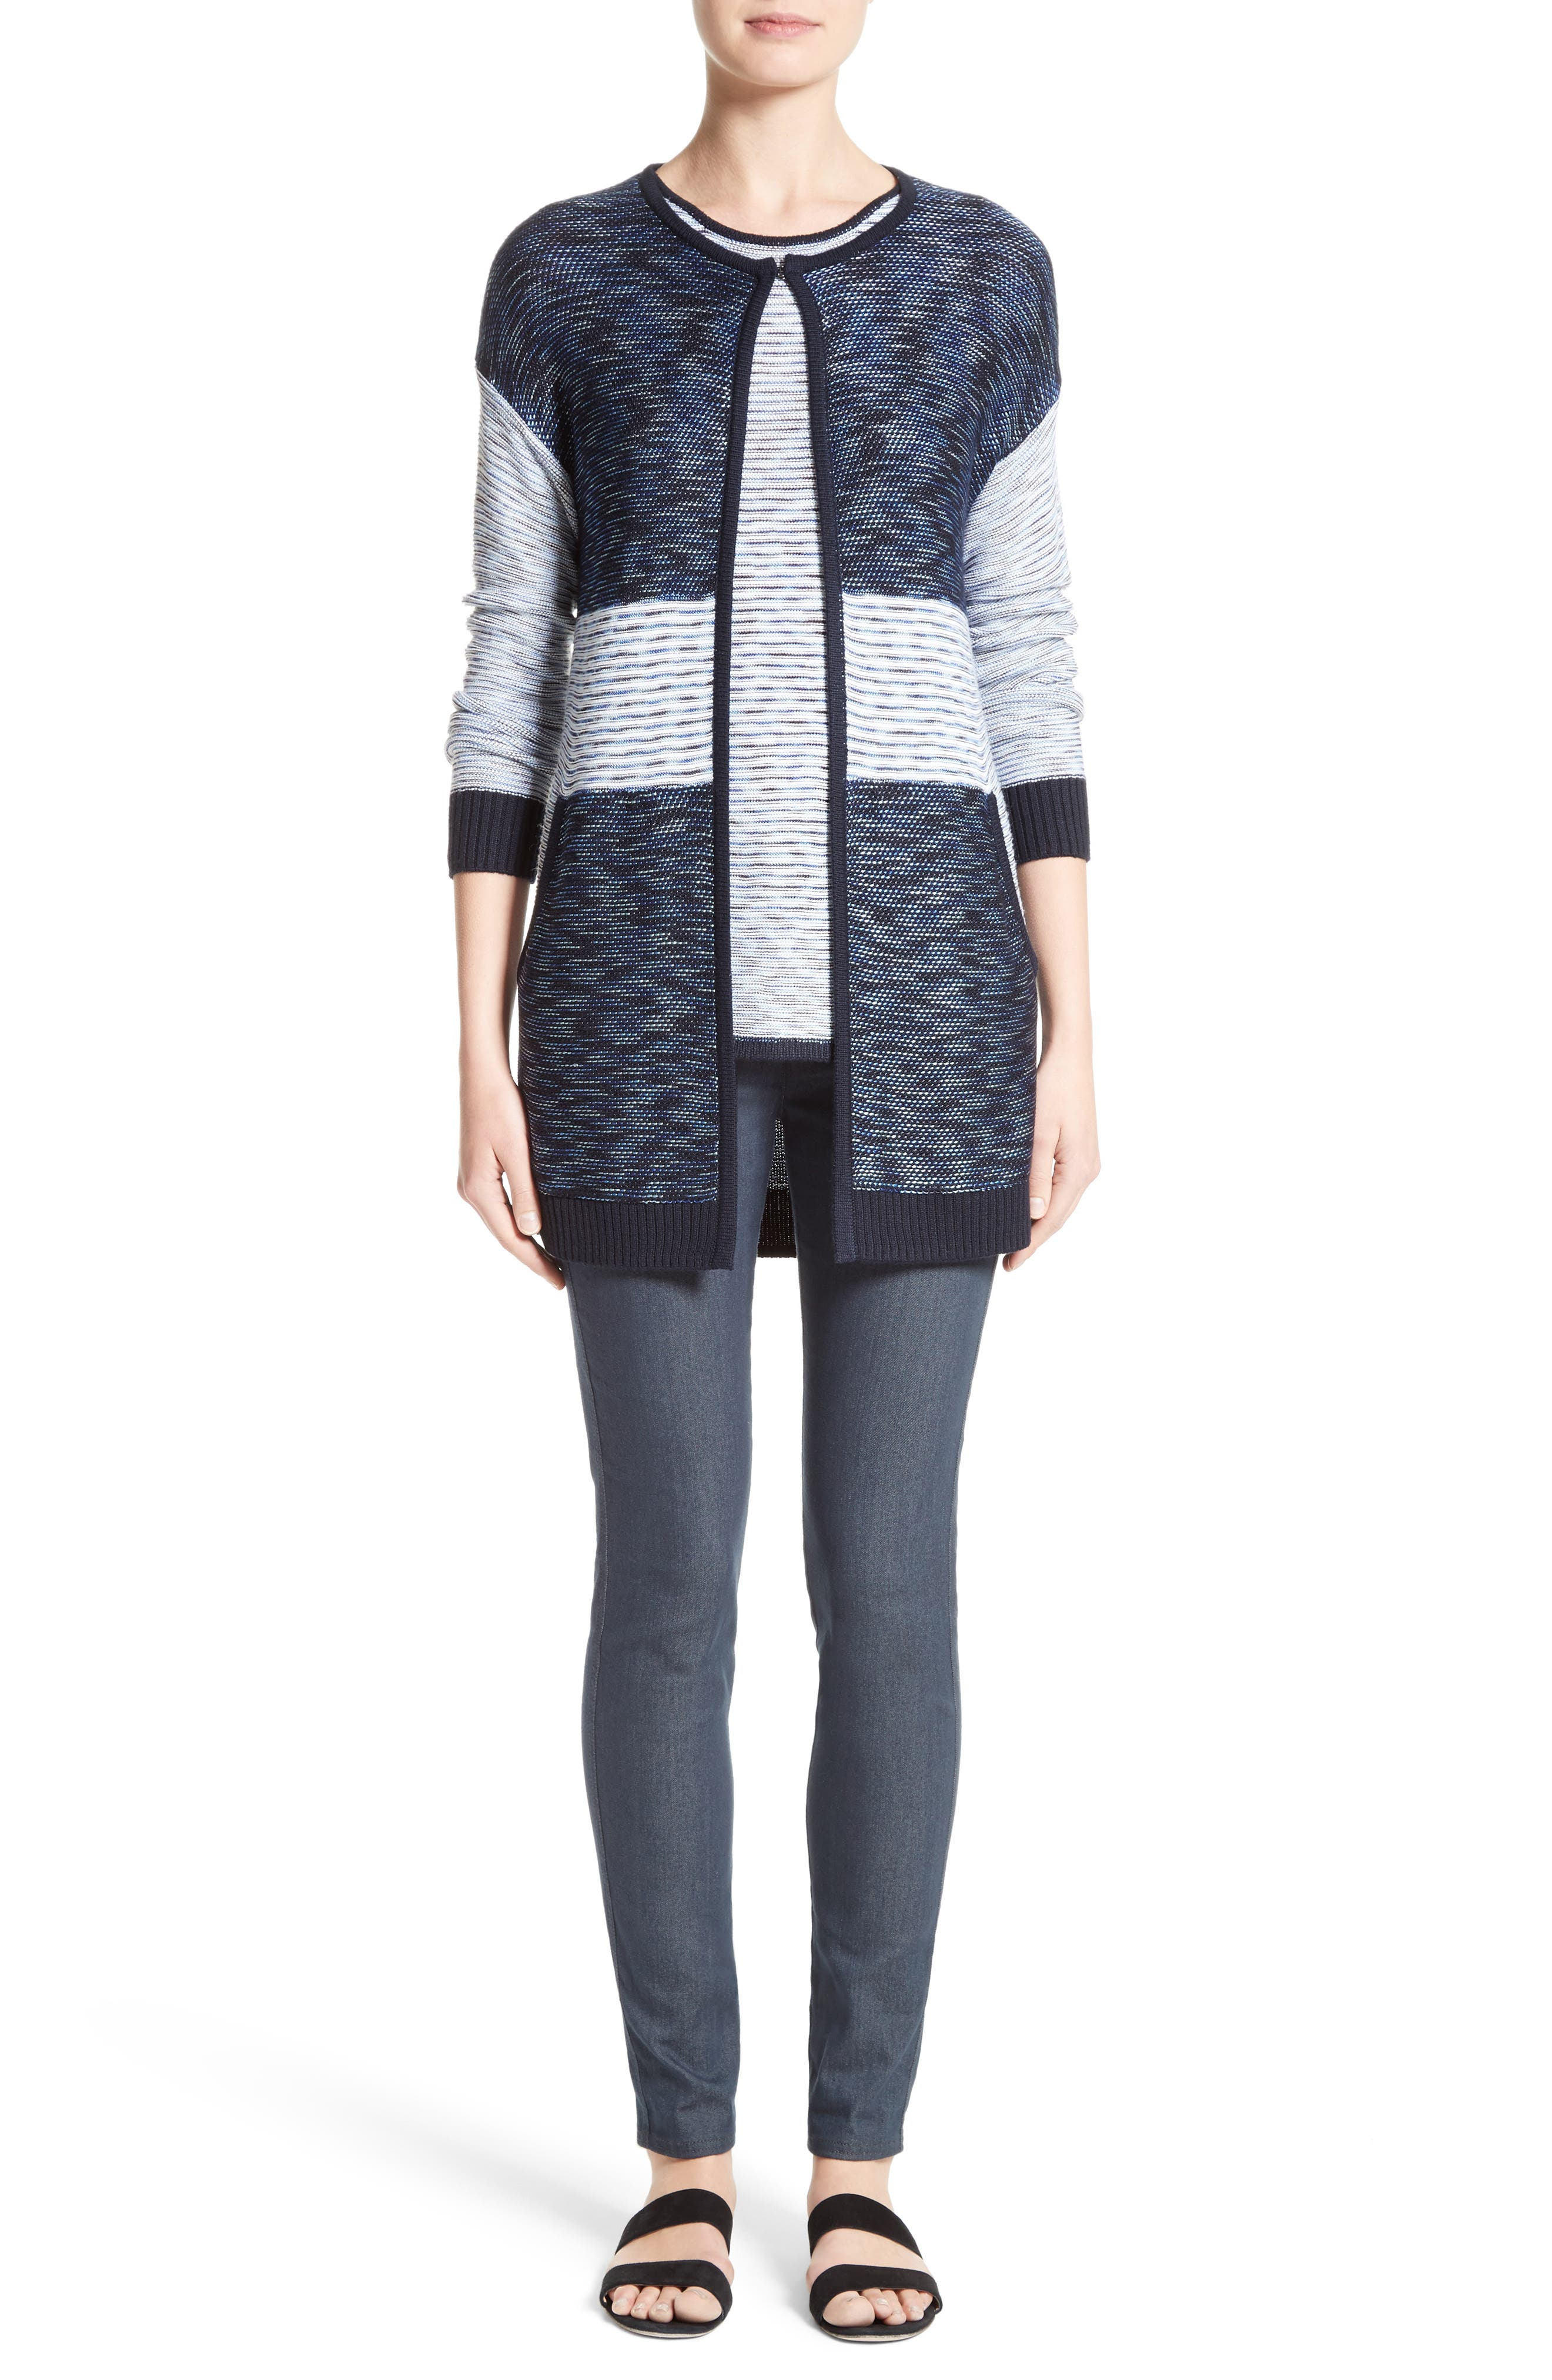 Chambray Effect Links Knit Cardigan,                             Alternate thumbnail 8, color,                             Bianco/ Navy Multi